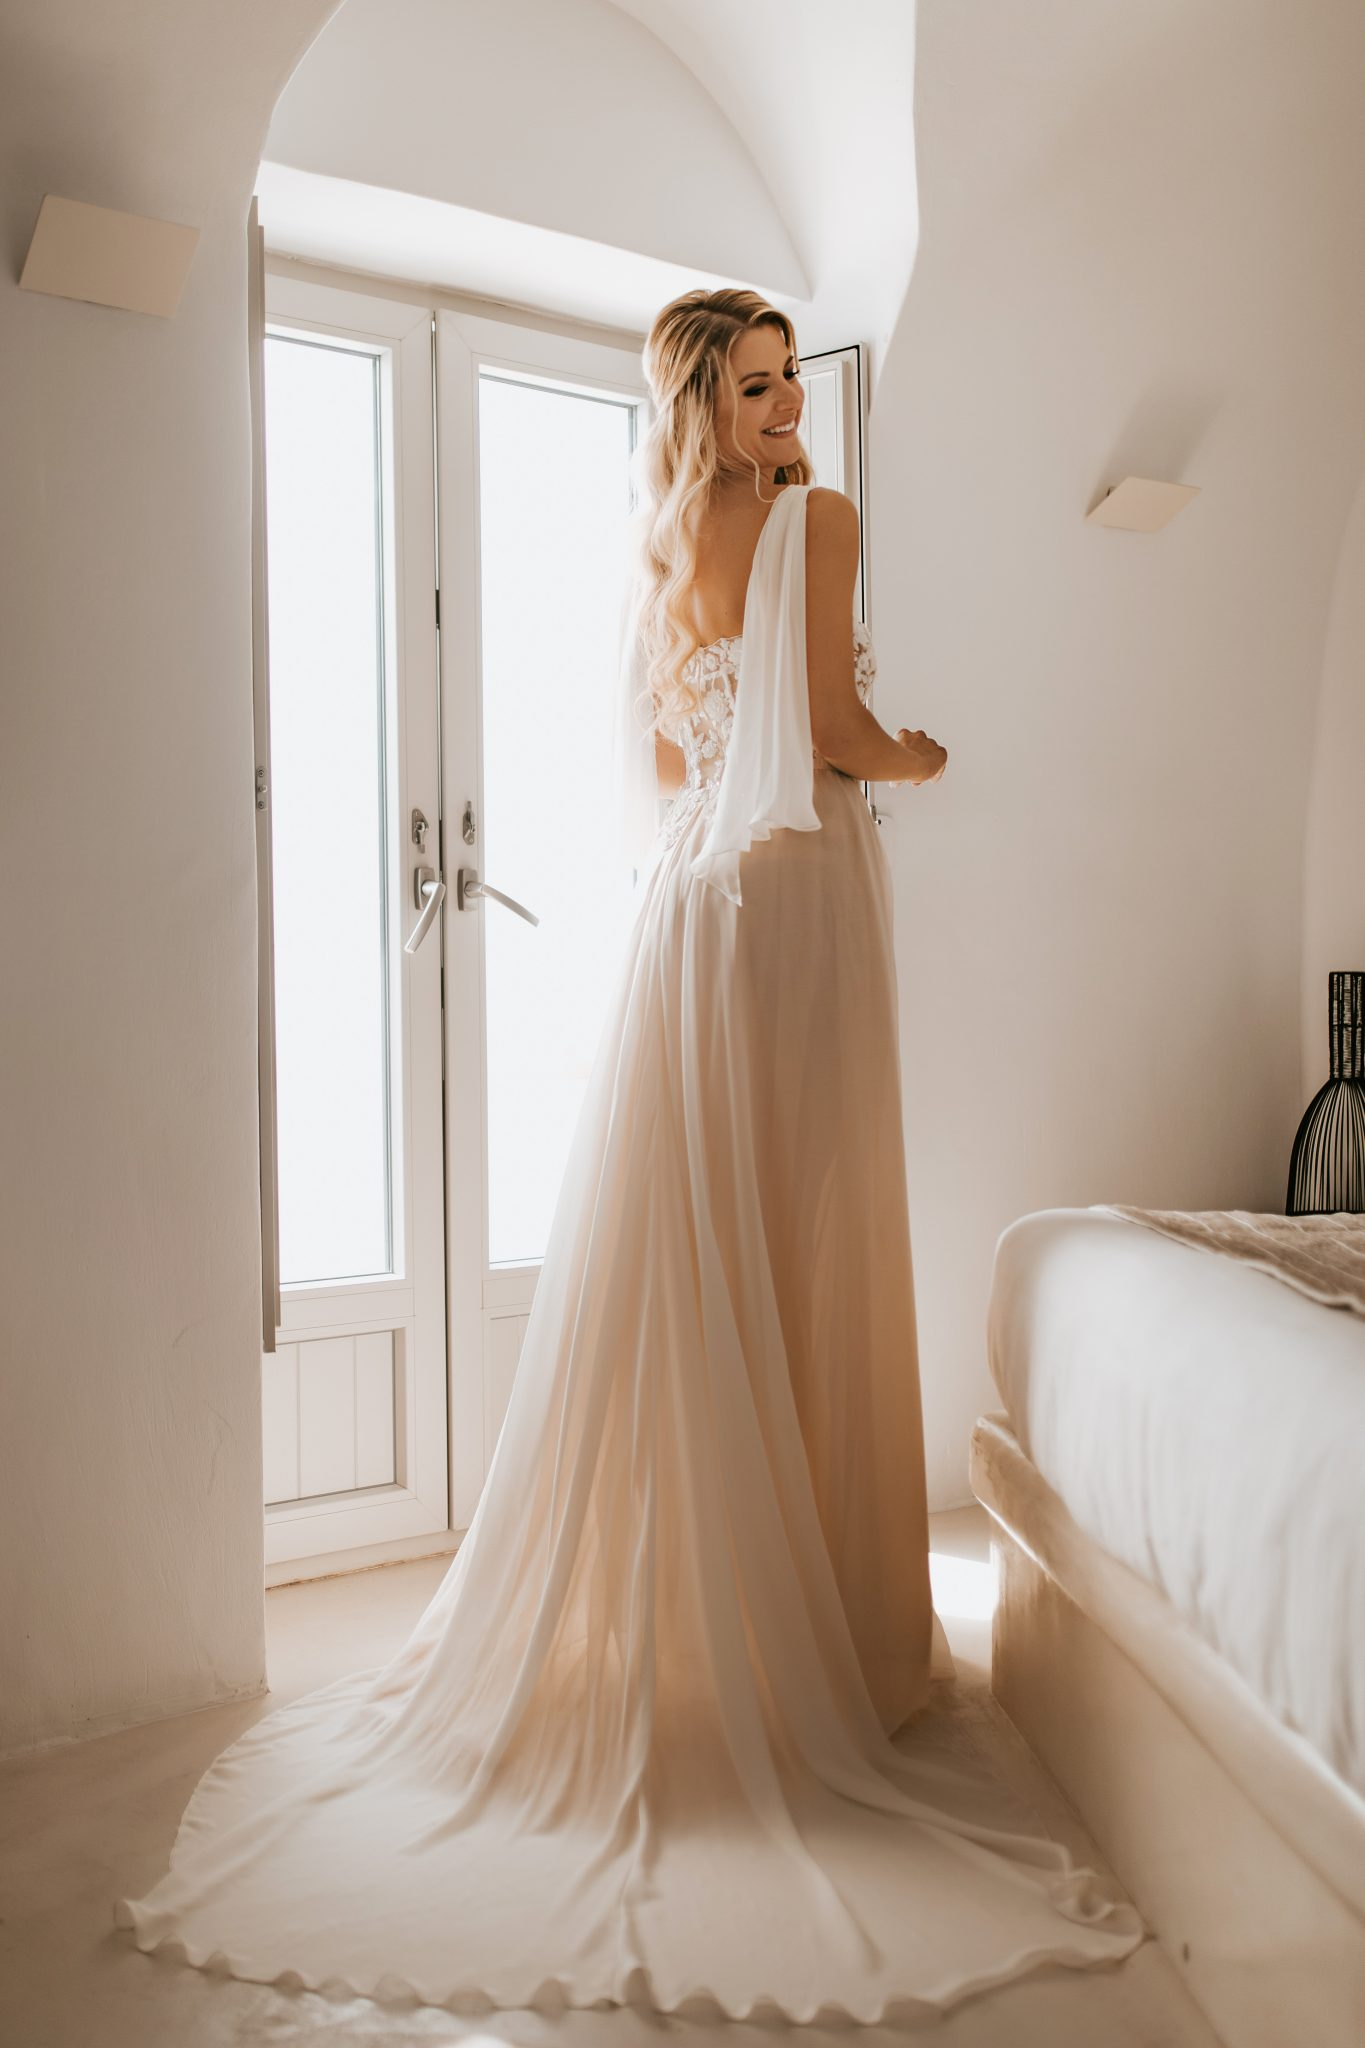 6 scaled - Destination Wedding Giedre ♥ Giuseppe